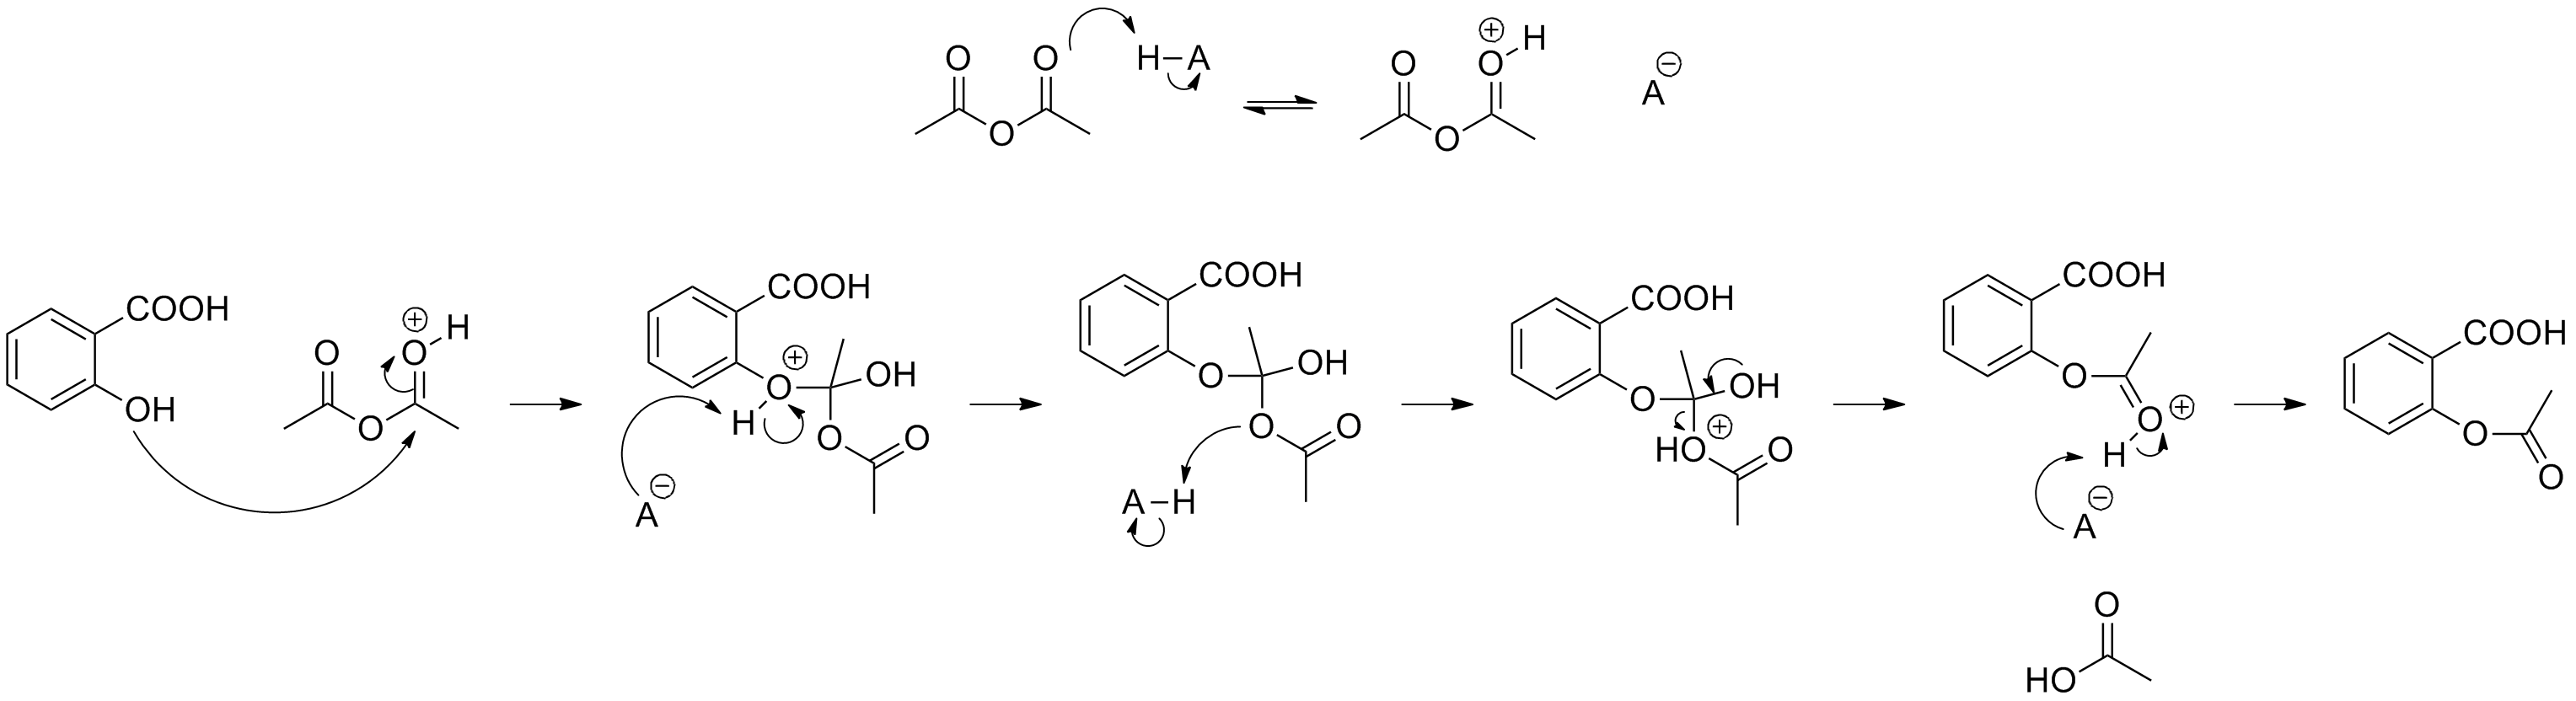 synthesis of salicylic acid from wintergreen View lab report - synthesis of salicylic acid from wintergreen oil from che 311 at american international synthesis of salicylic acid from wintergreen oil organic.